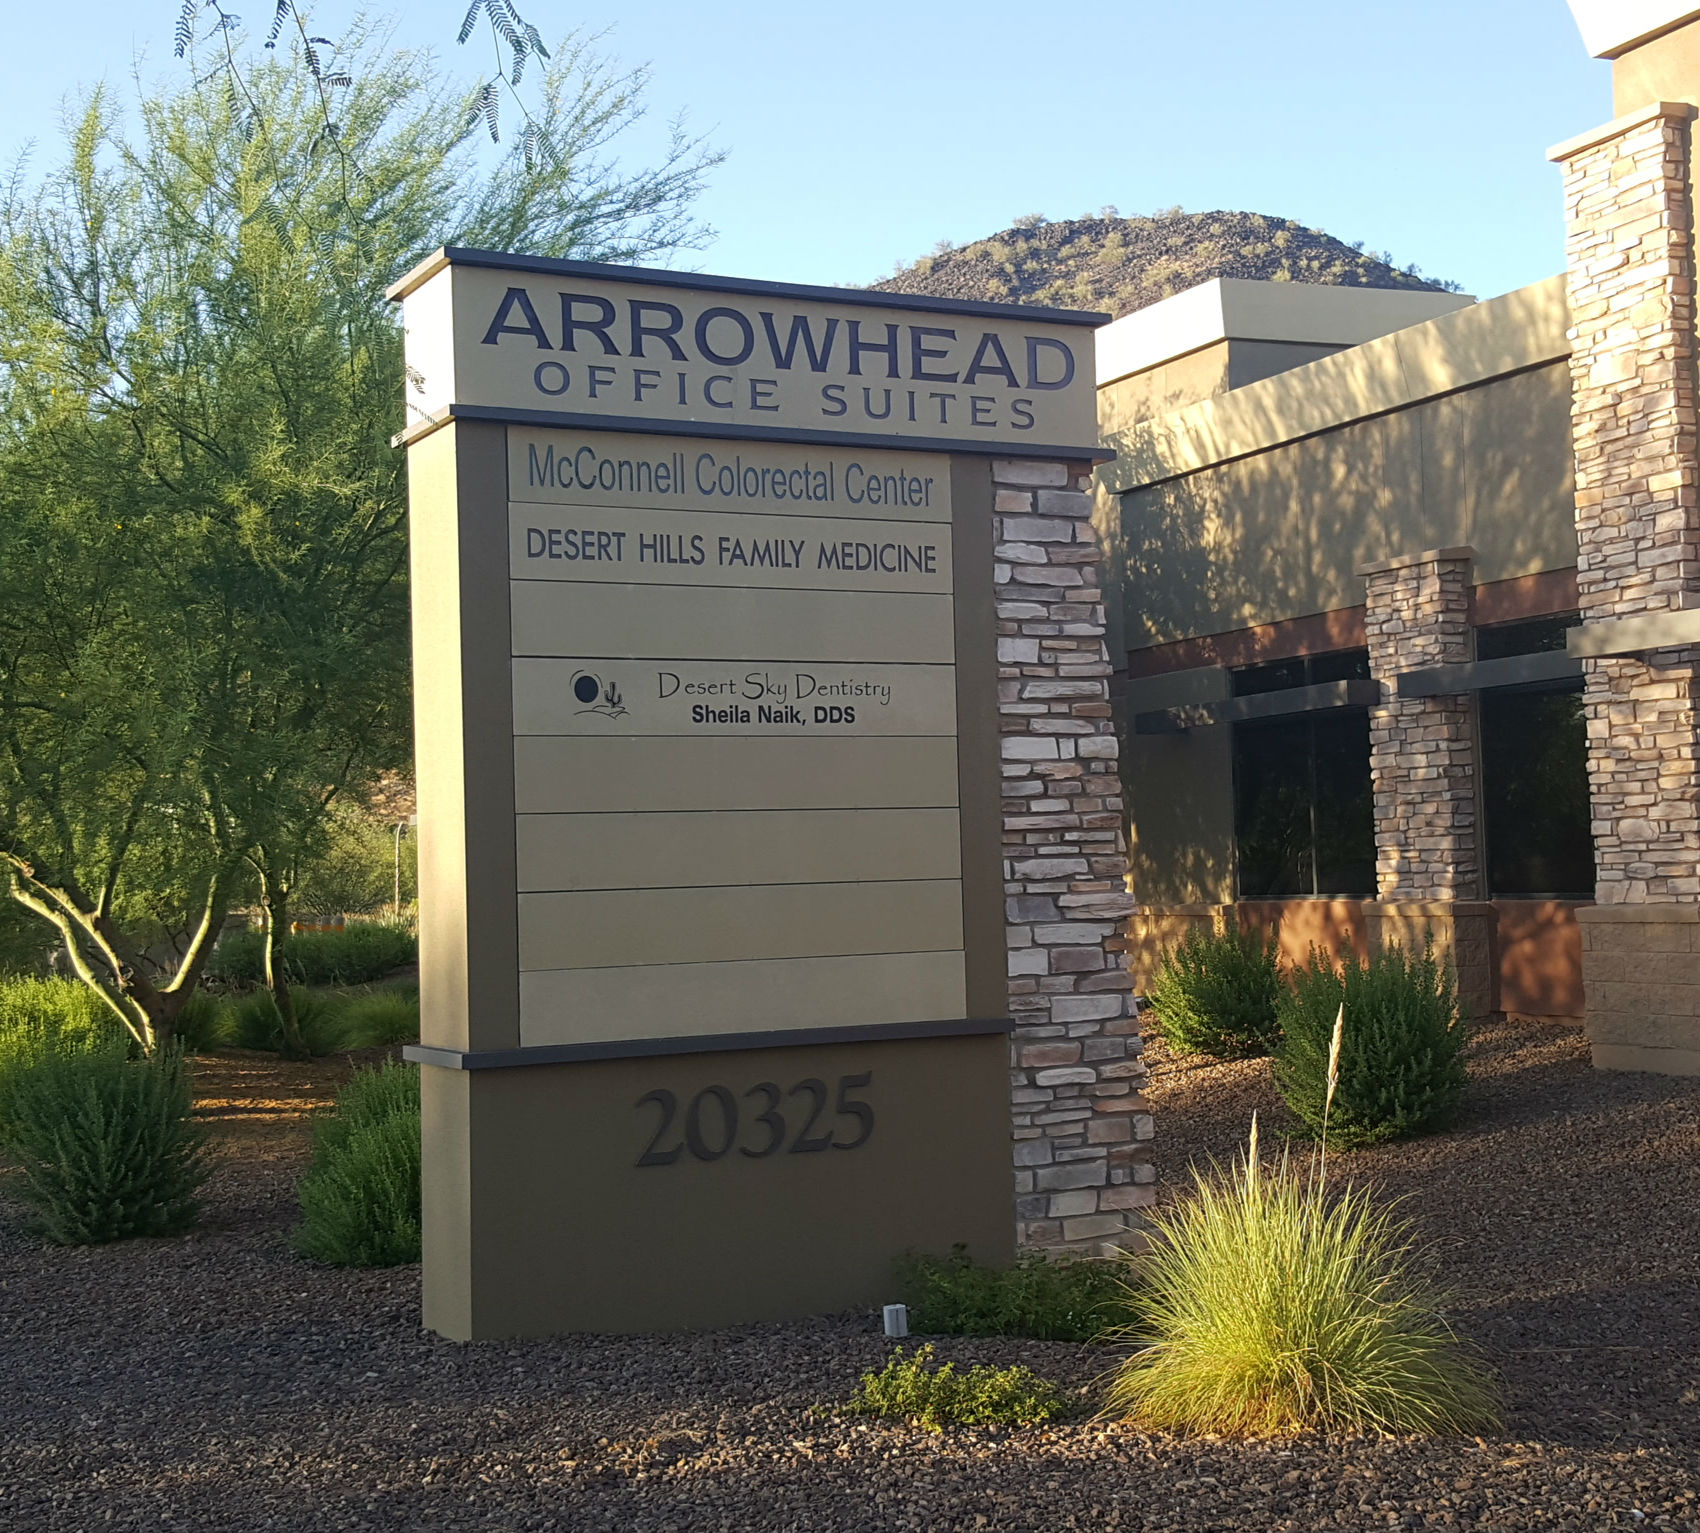 Find the office at the Arrowhead Parkway, Glendale, Arizona.